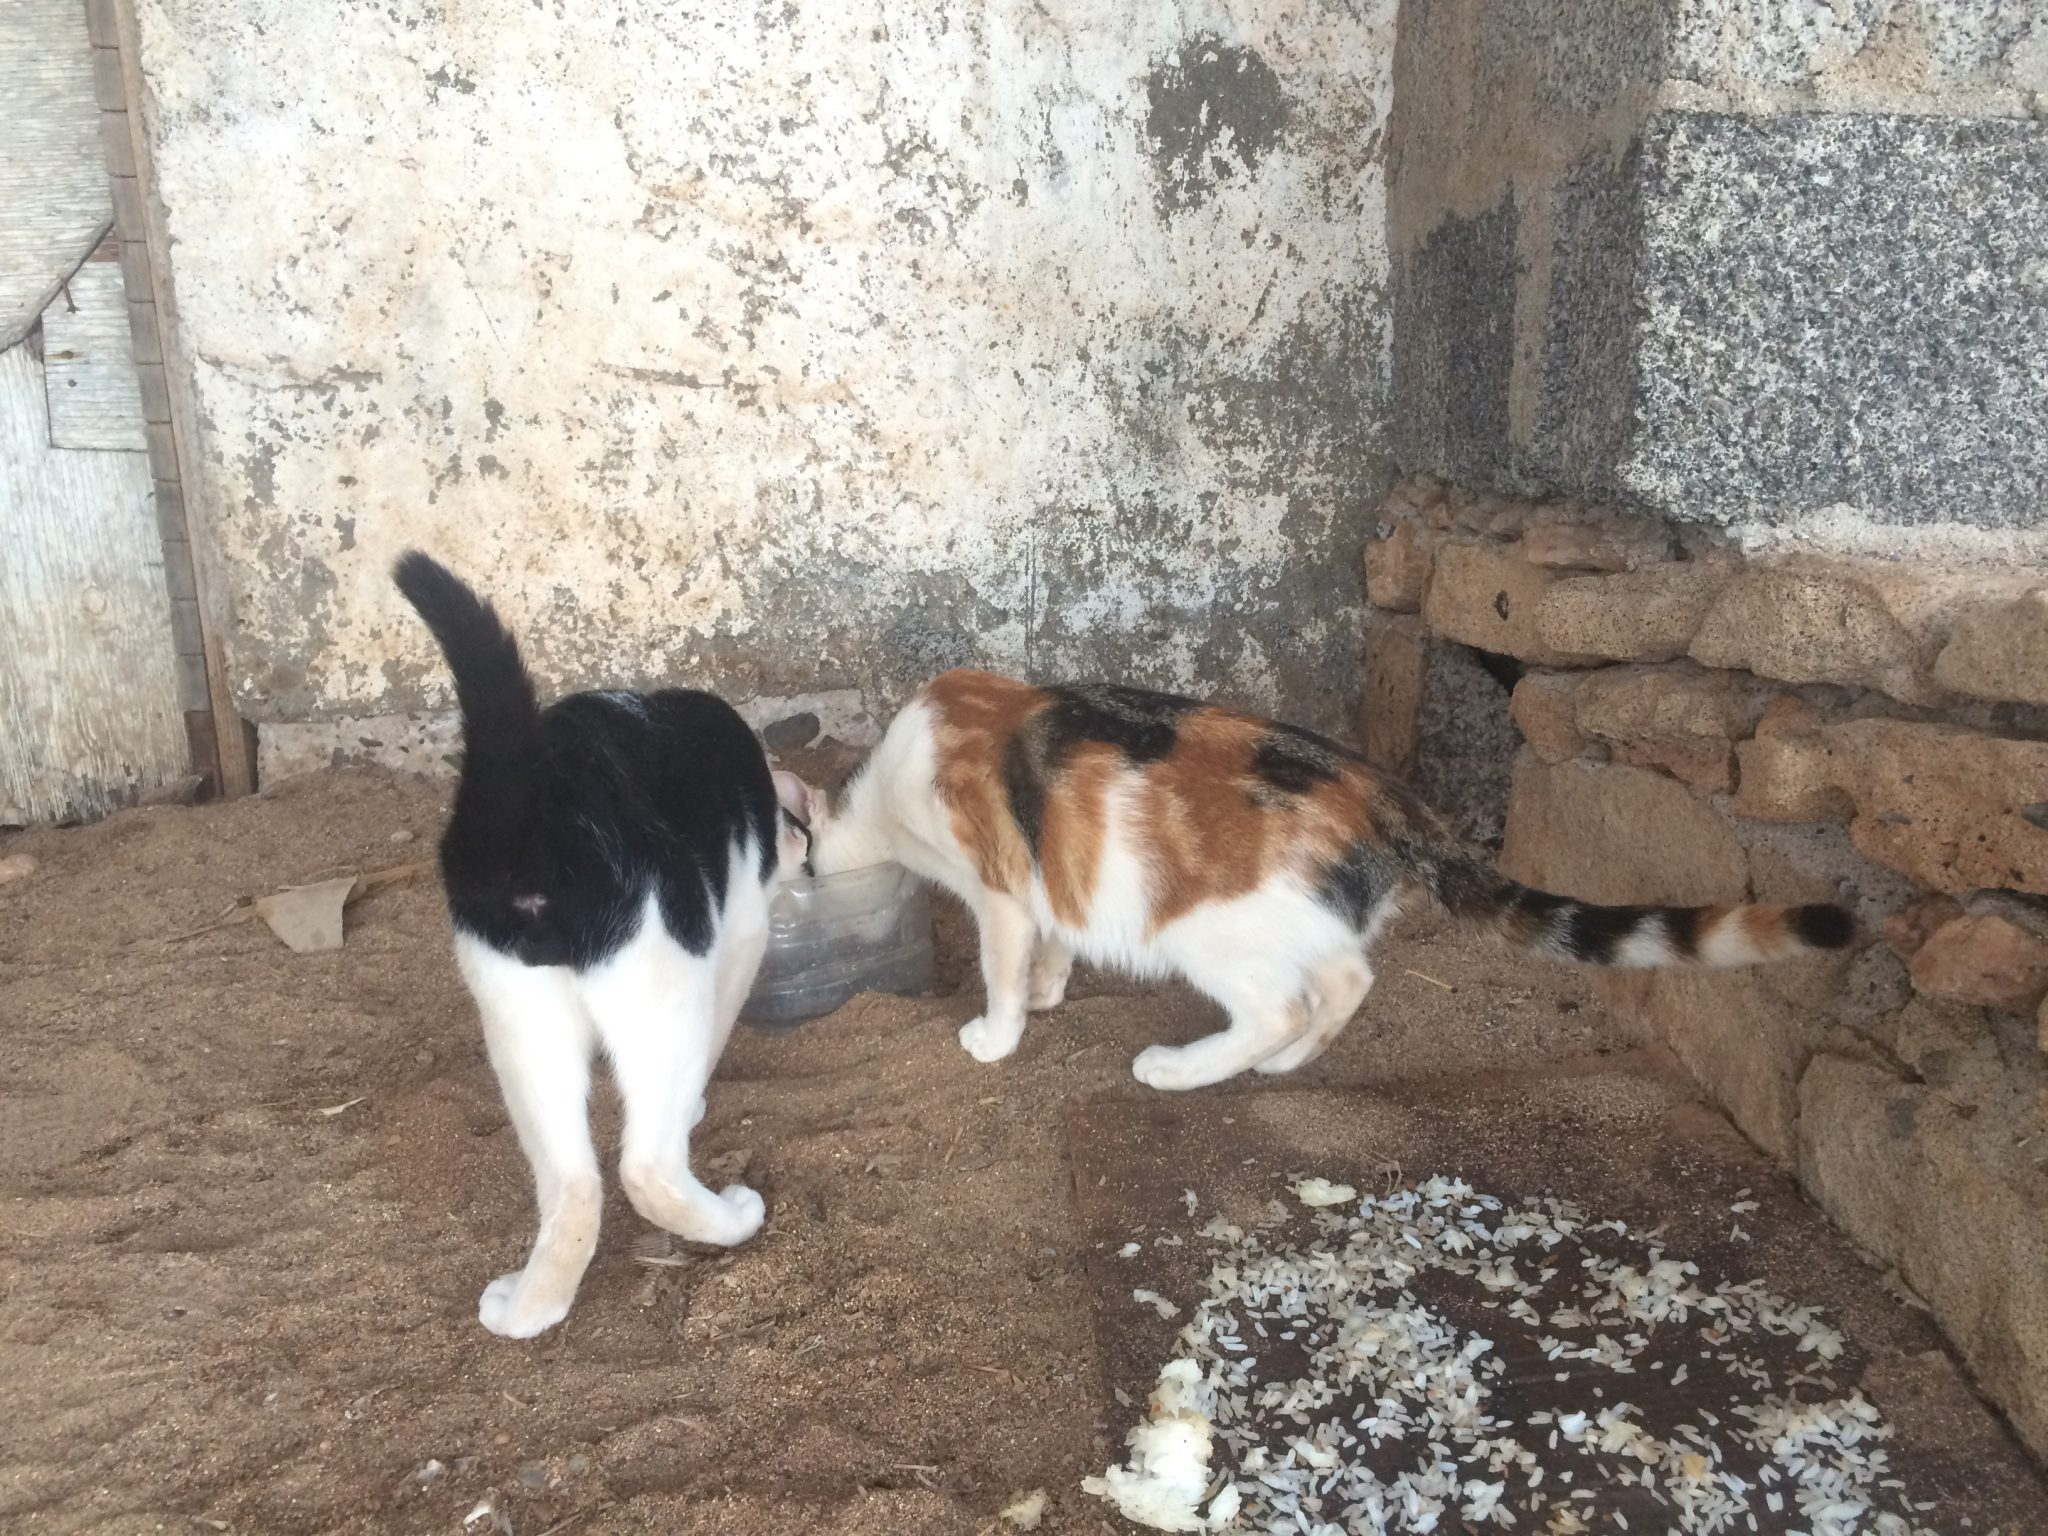 Cats on a deserted beach, Sal Island, Cape Verde